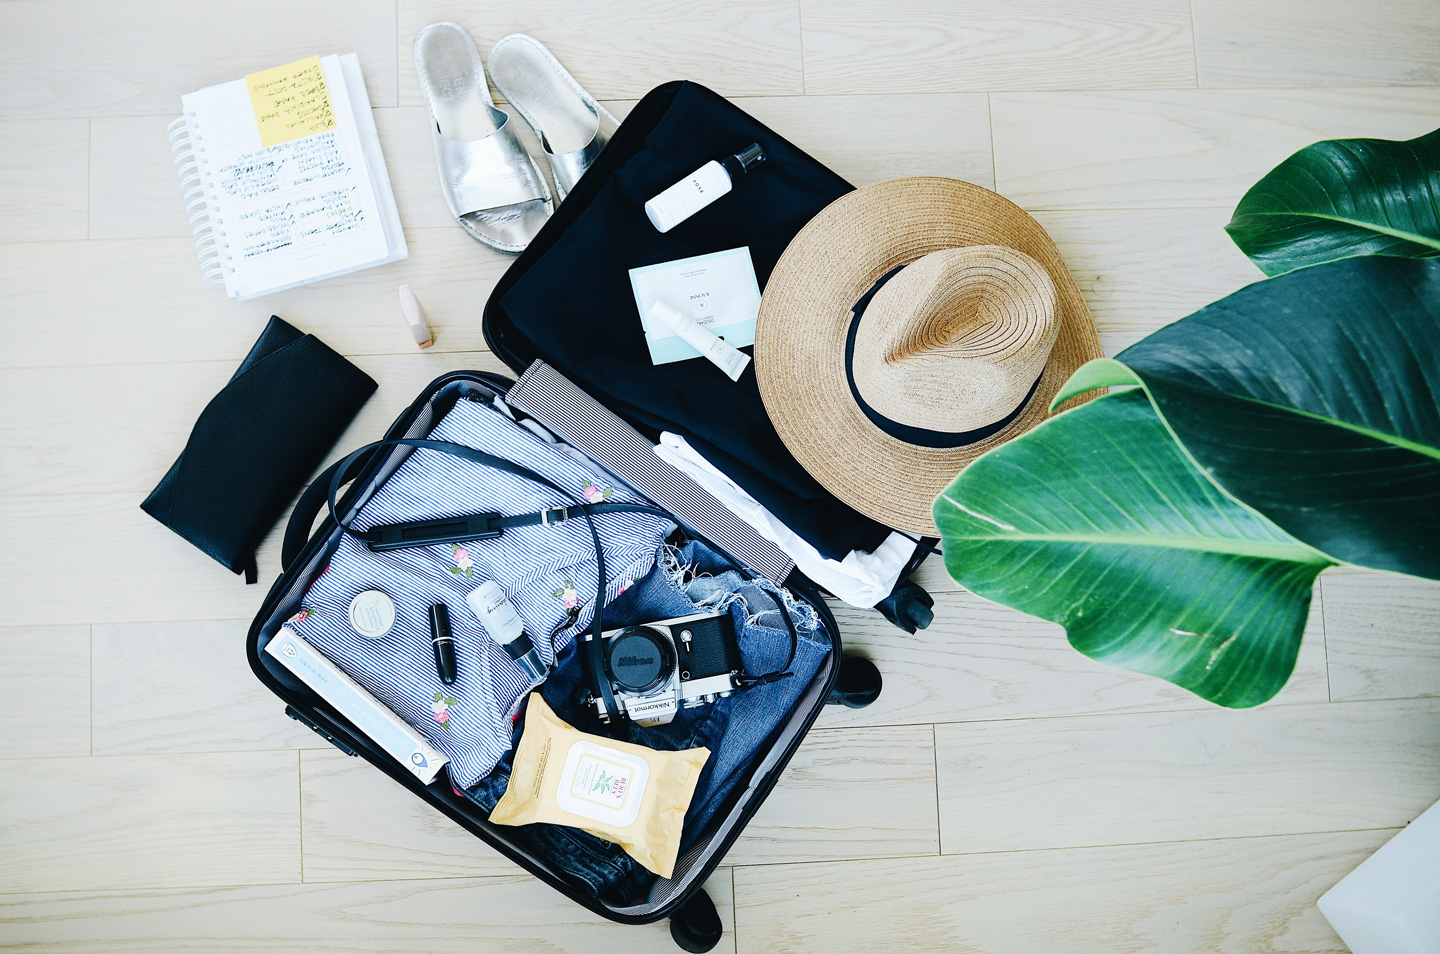 photo of an opened suitcase